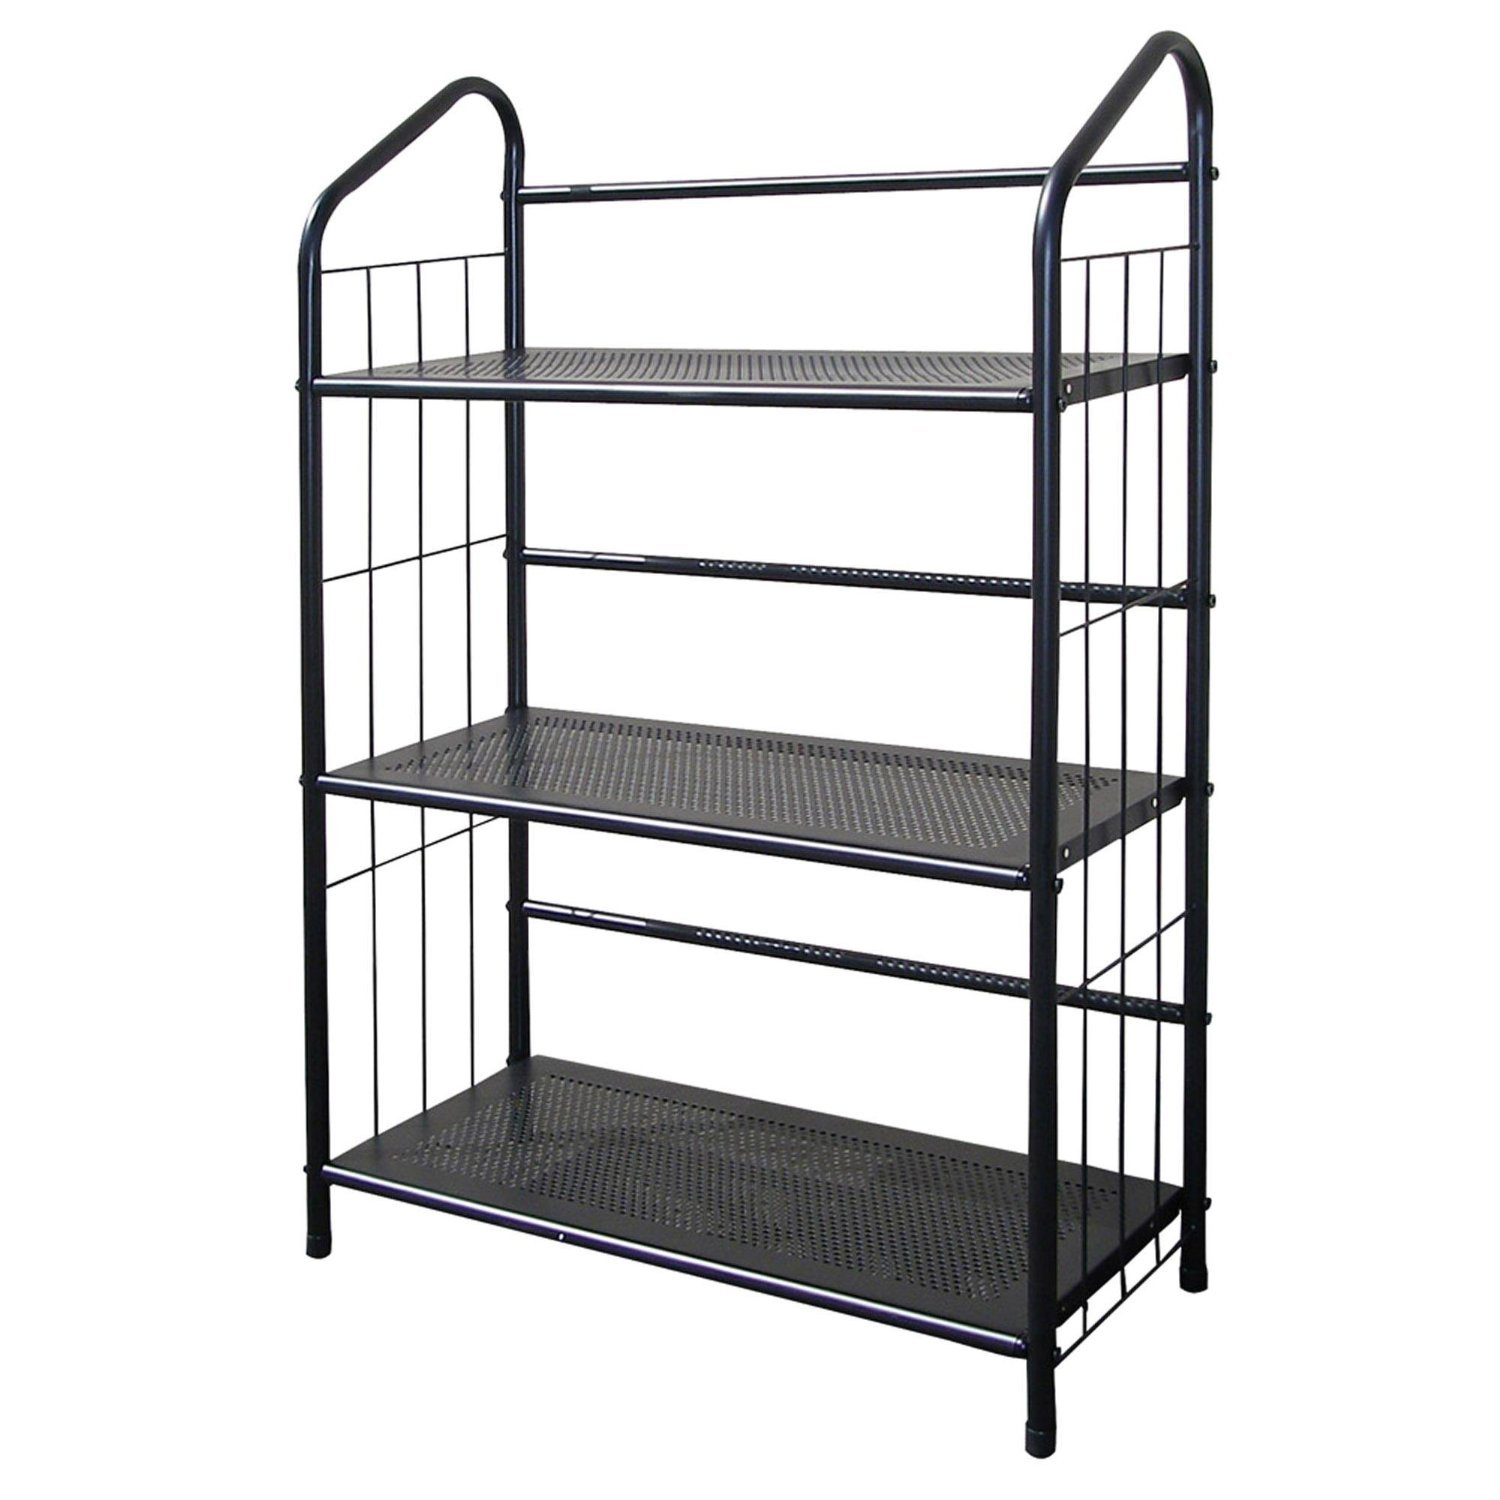 Amazon.com: ORE International R597-3 Metal Book Shelf Bookcase ...